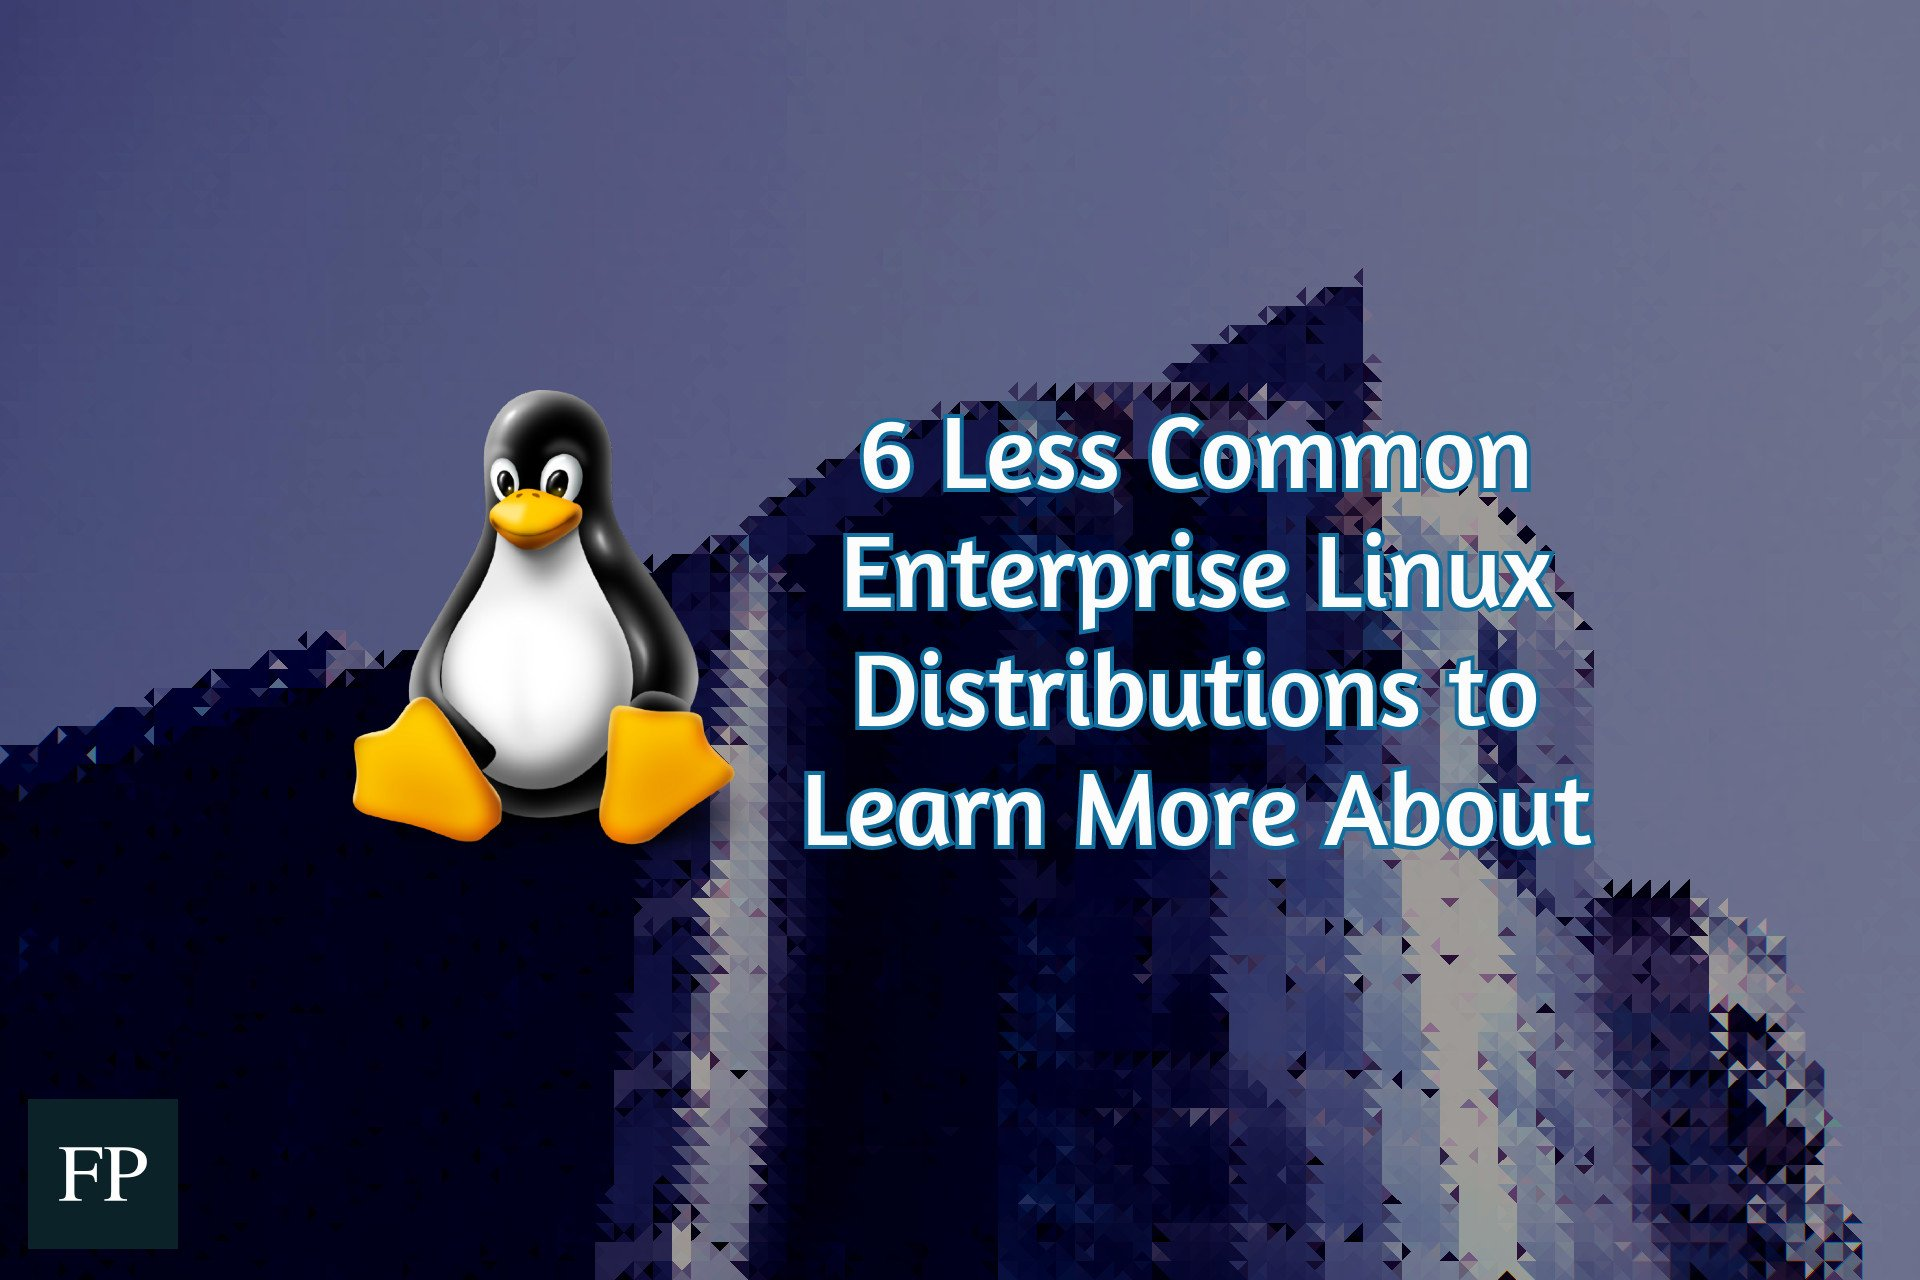 enterprise linux 195 February 13, 2020